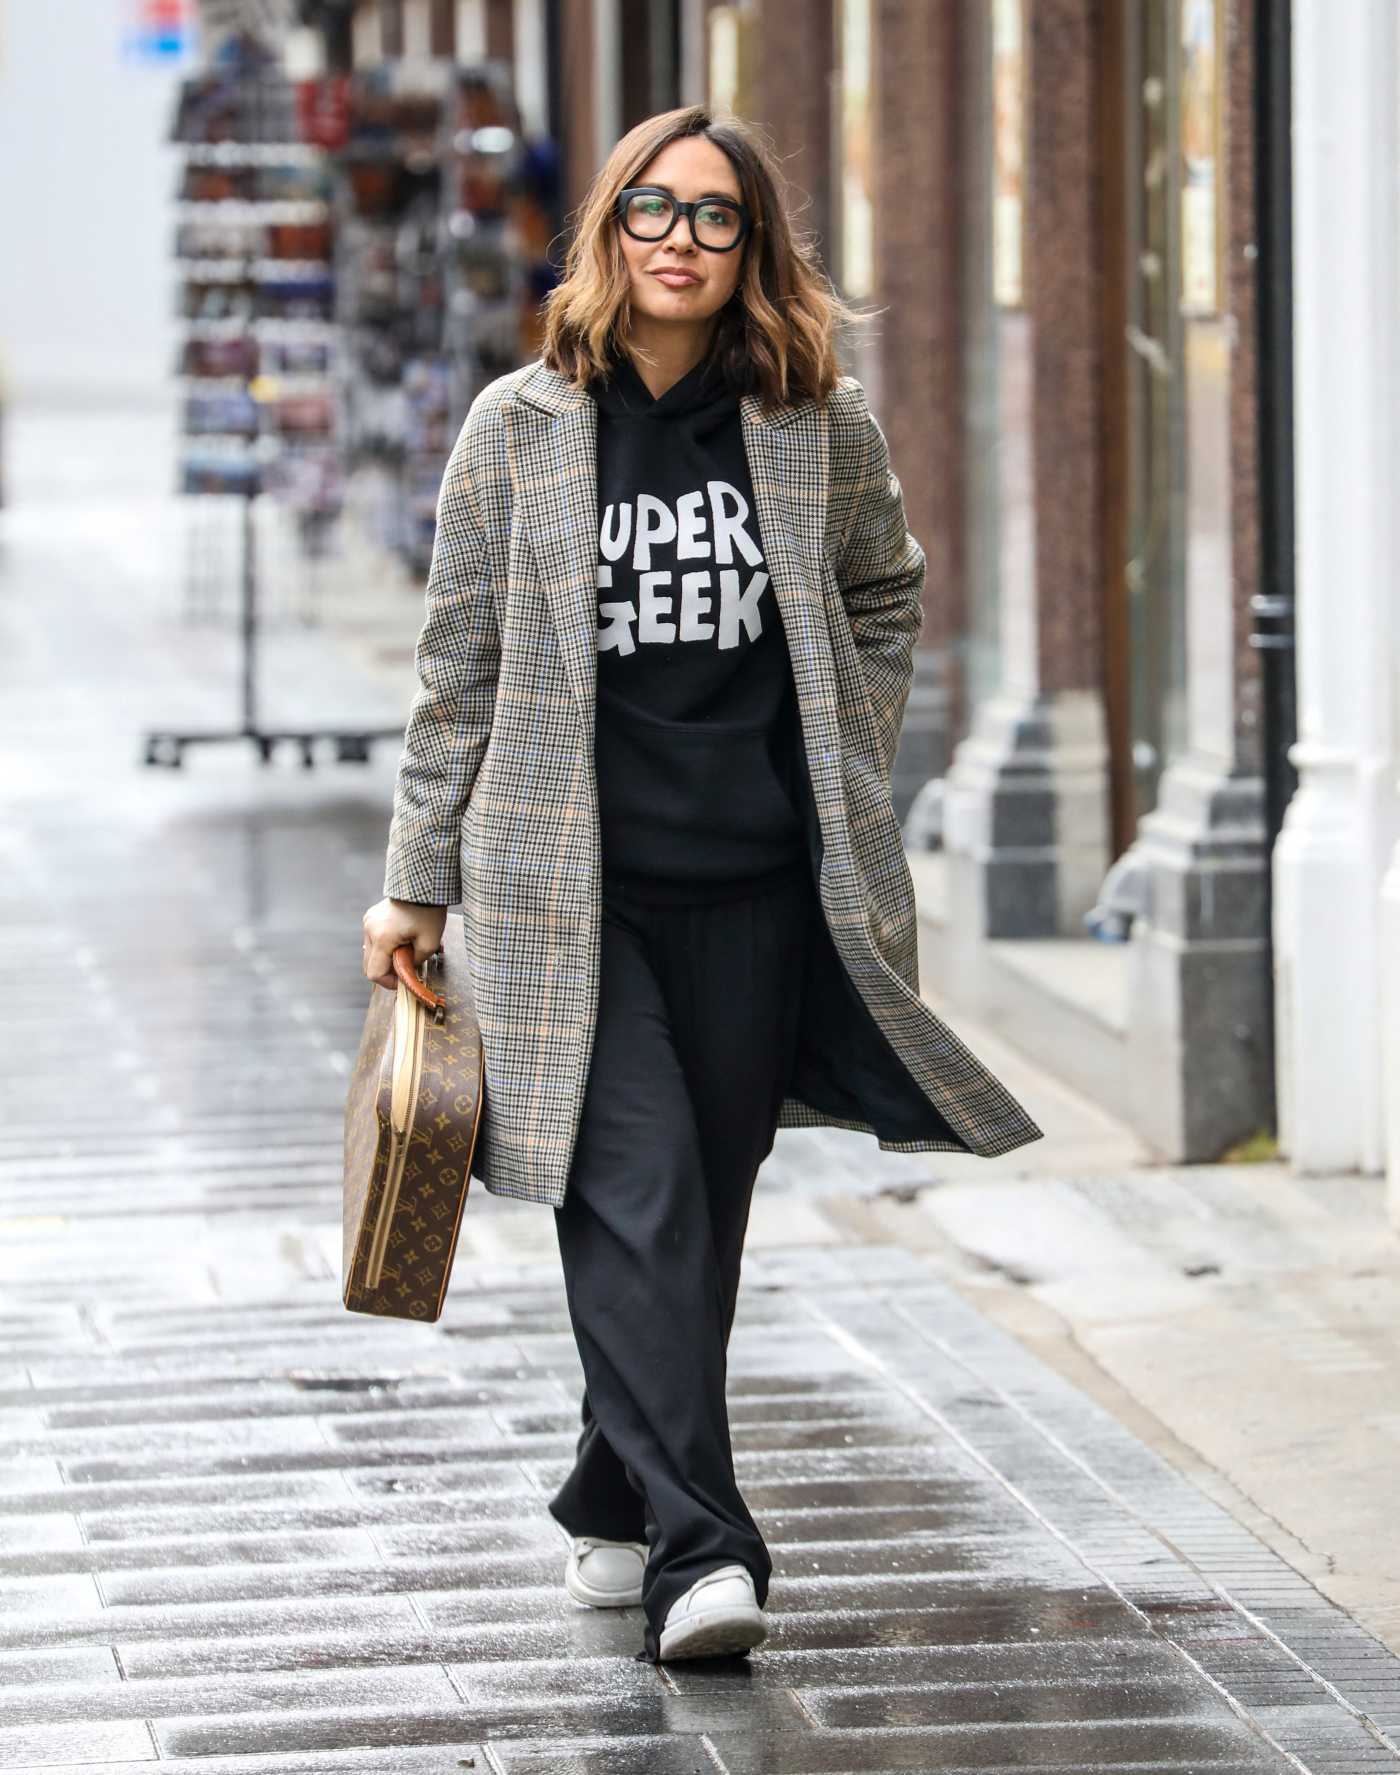 Myleene Klass in a Black Pants Arrives at the Global Radio Studios in London 03/25/2021